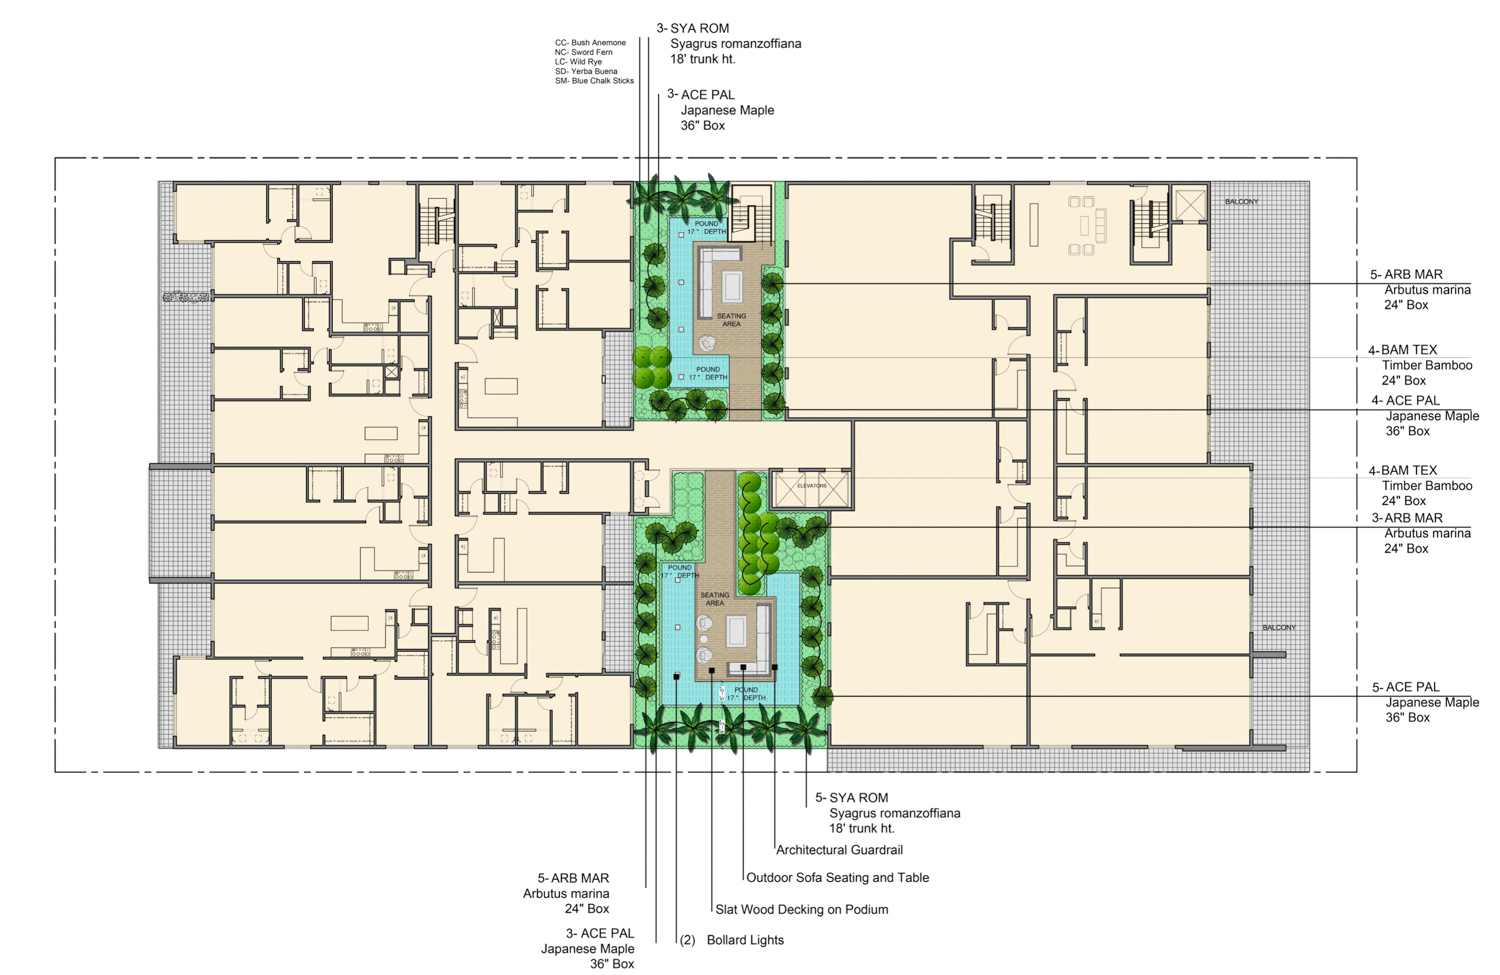 1073-1087 South Winchester Boulevard second-level amenity floor plan, rendering by Shila Yasmeh